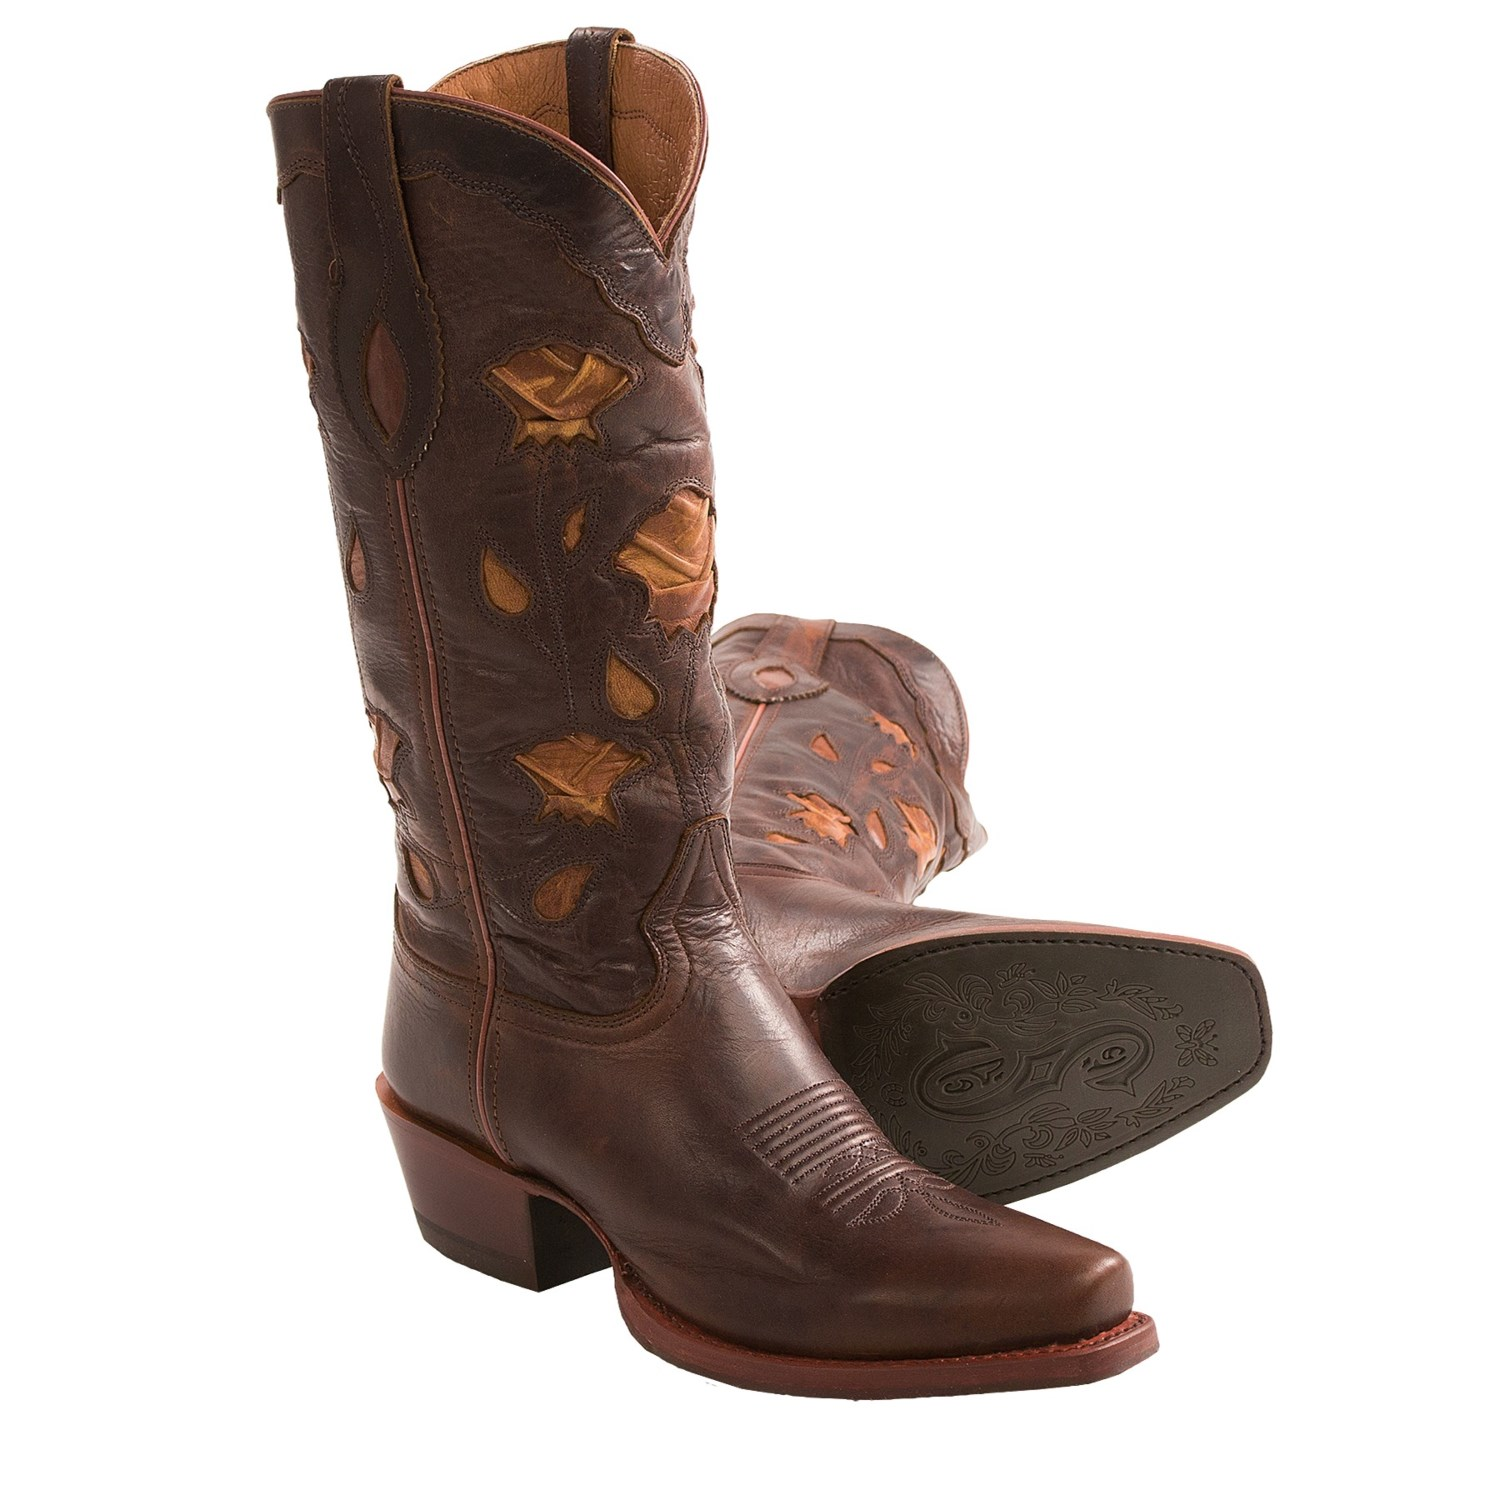 Where To Buy Cheap Cowboy Boots Pict Gallery | Shoe Clip Art